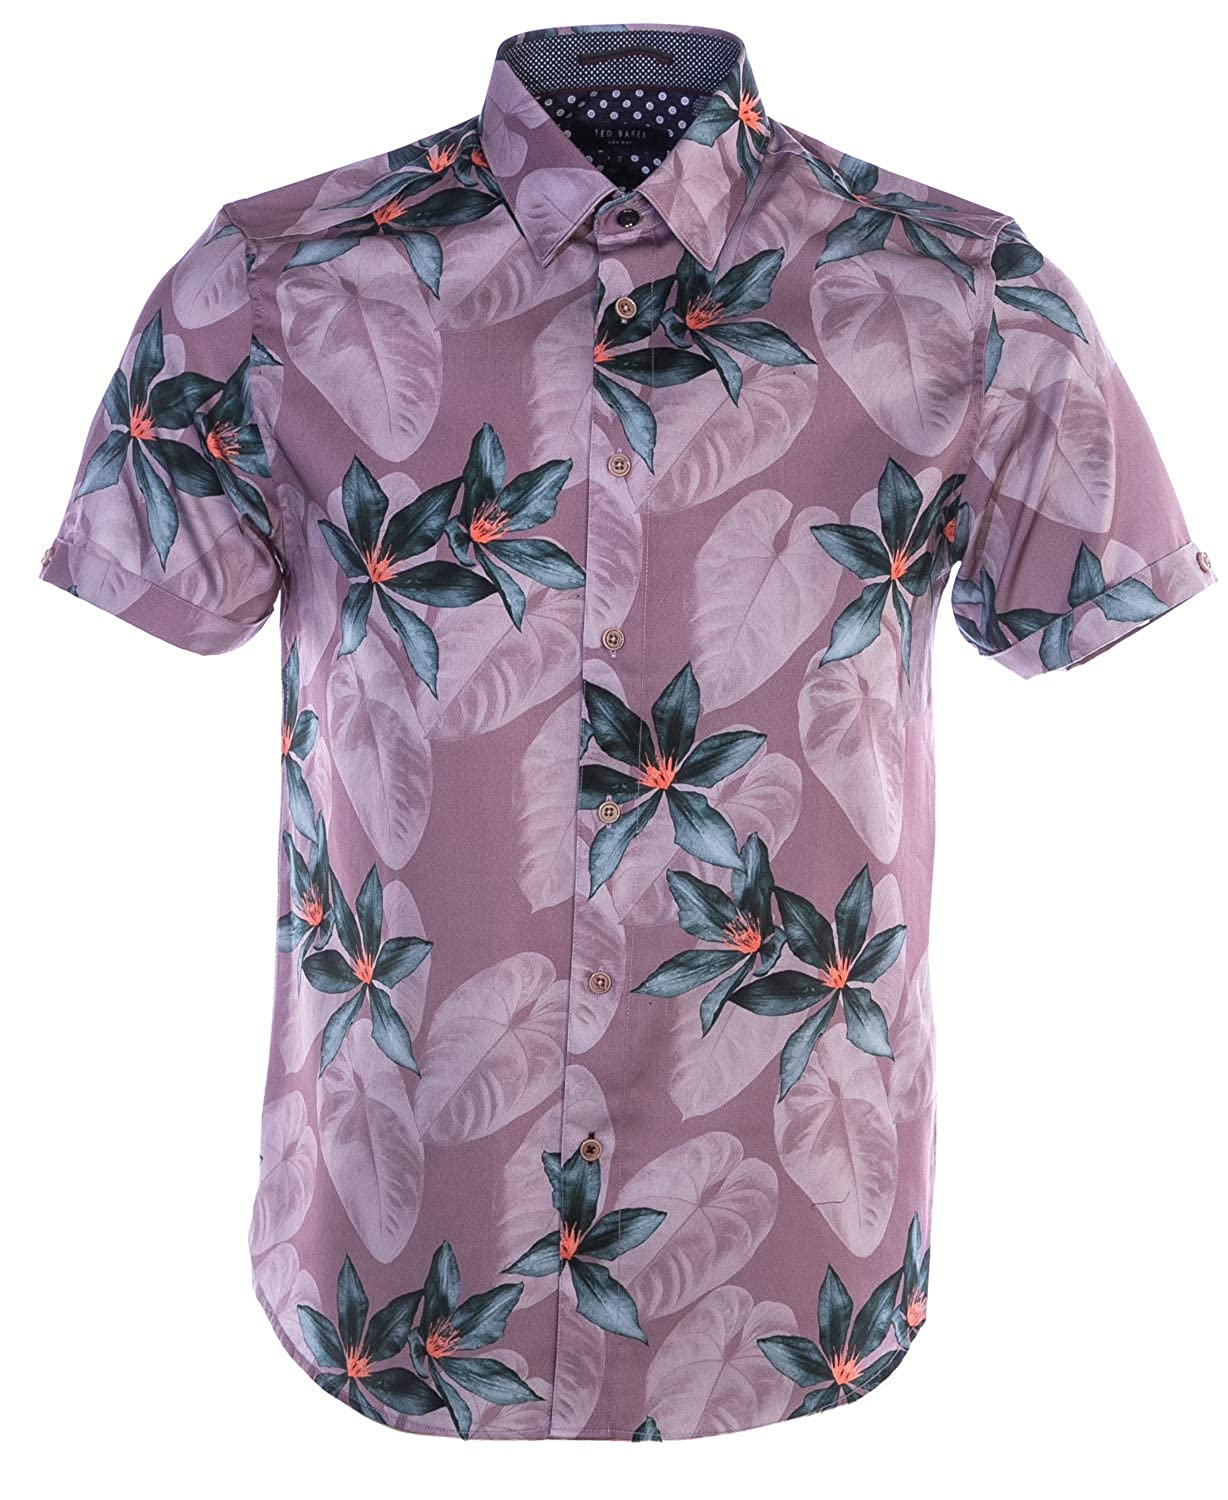 Ted Baker Myles manche courte Shirt in rose Floral